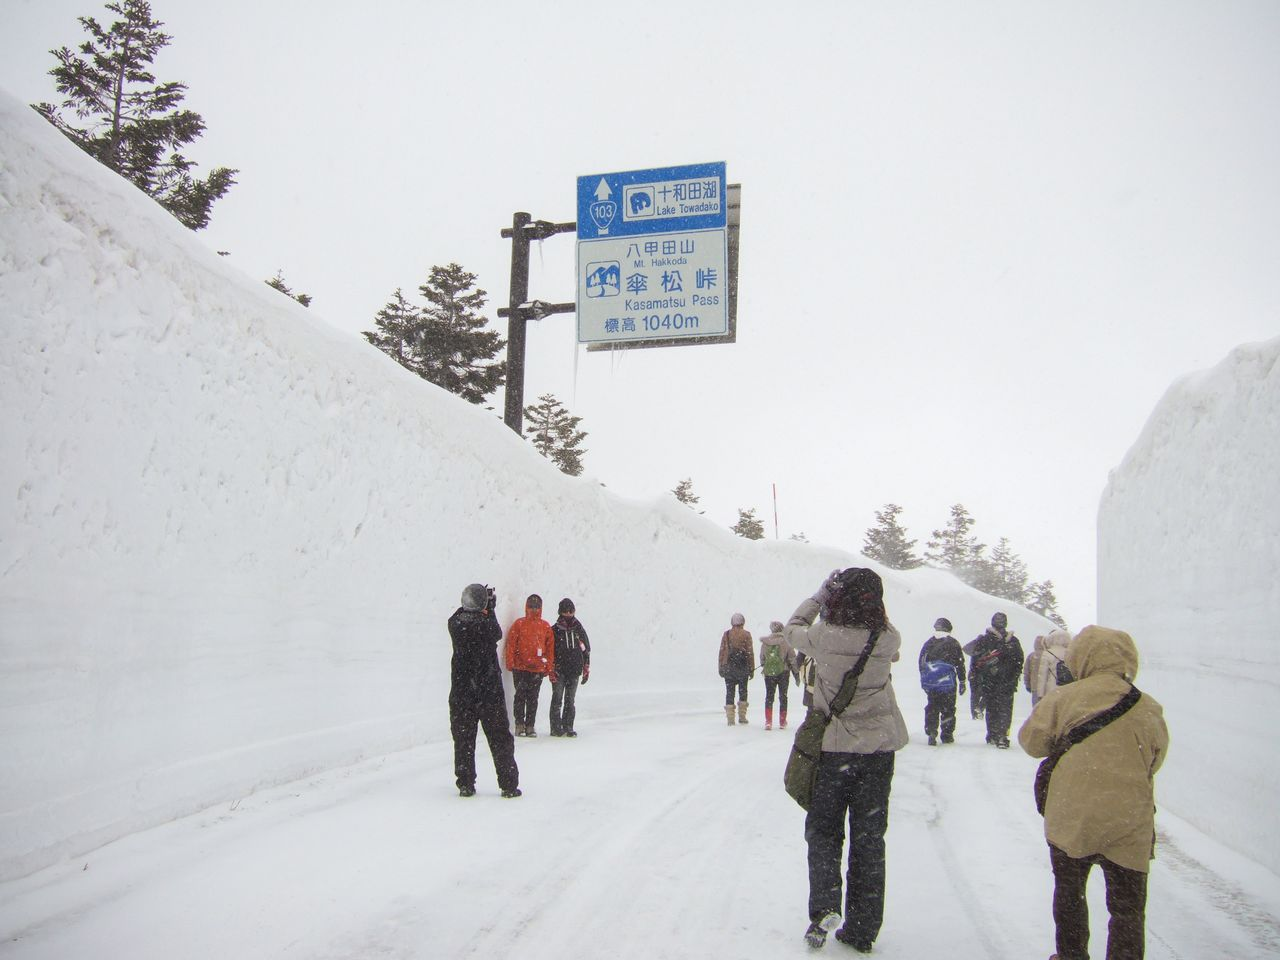 Visitors on the Hakkōda Walk make their way through a tall corridor of plowed snow. The Hakkōda-Towada Gold Line is closed during the winter, but the section between Sukayu and Yachi is opened for just two days at the end of March to allow visitors a preview of the snow corridor before the Gold Line opens for spring. (© Aomori Prefecture Tourism Federation)